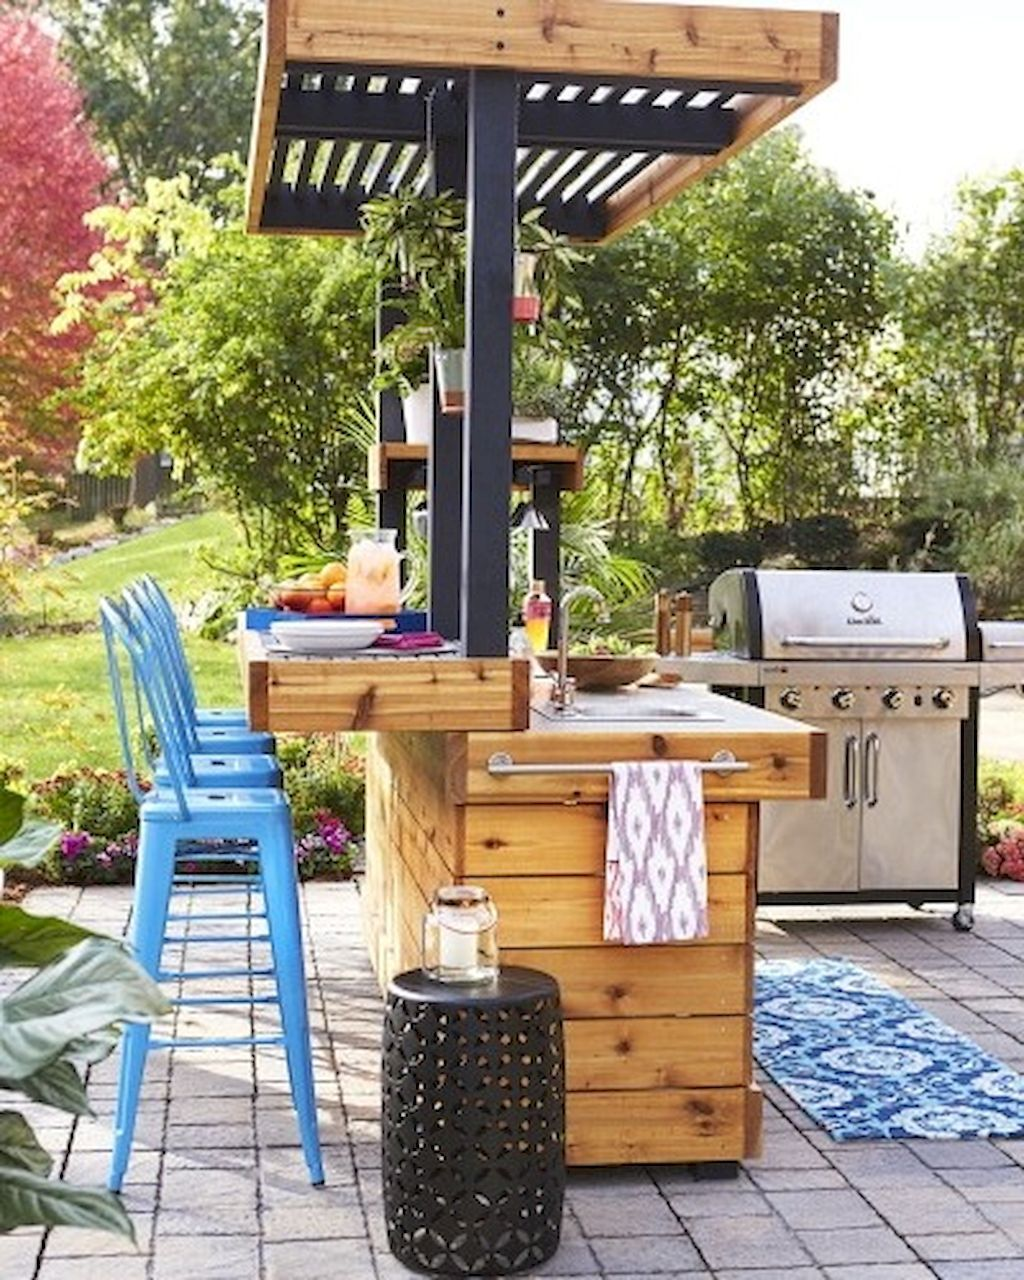 Awesome 47 Incredible Outdoor Kitchen Design Ideas on